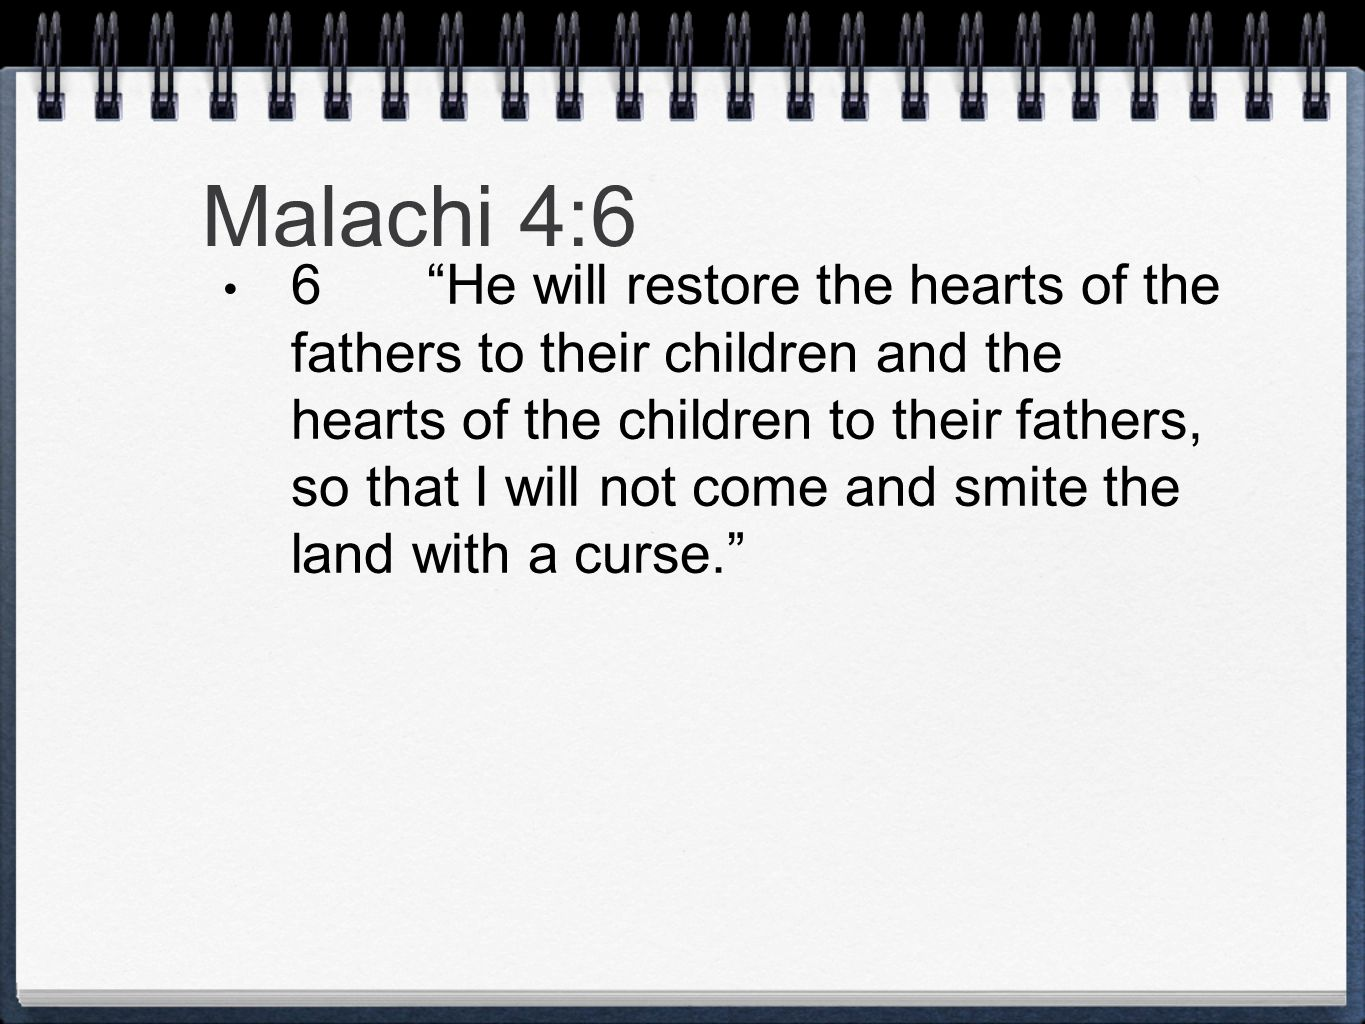 Malachi 4:6 6 He will restore the hearts of the fathers to their children and the hearts of the children to their fathers, so that I will not come and smite the land with a curse.